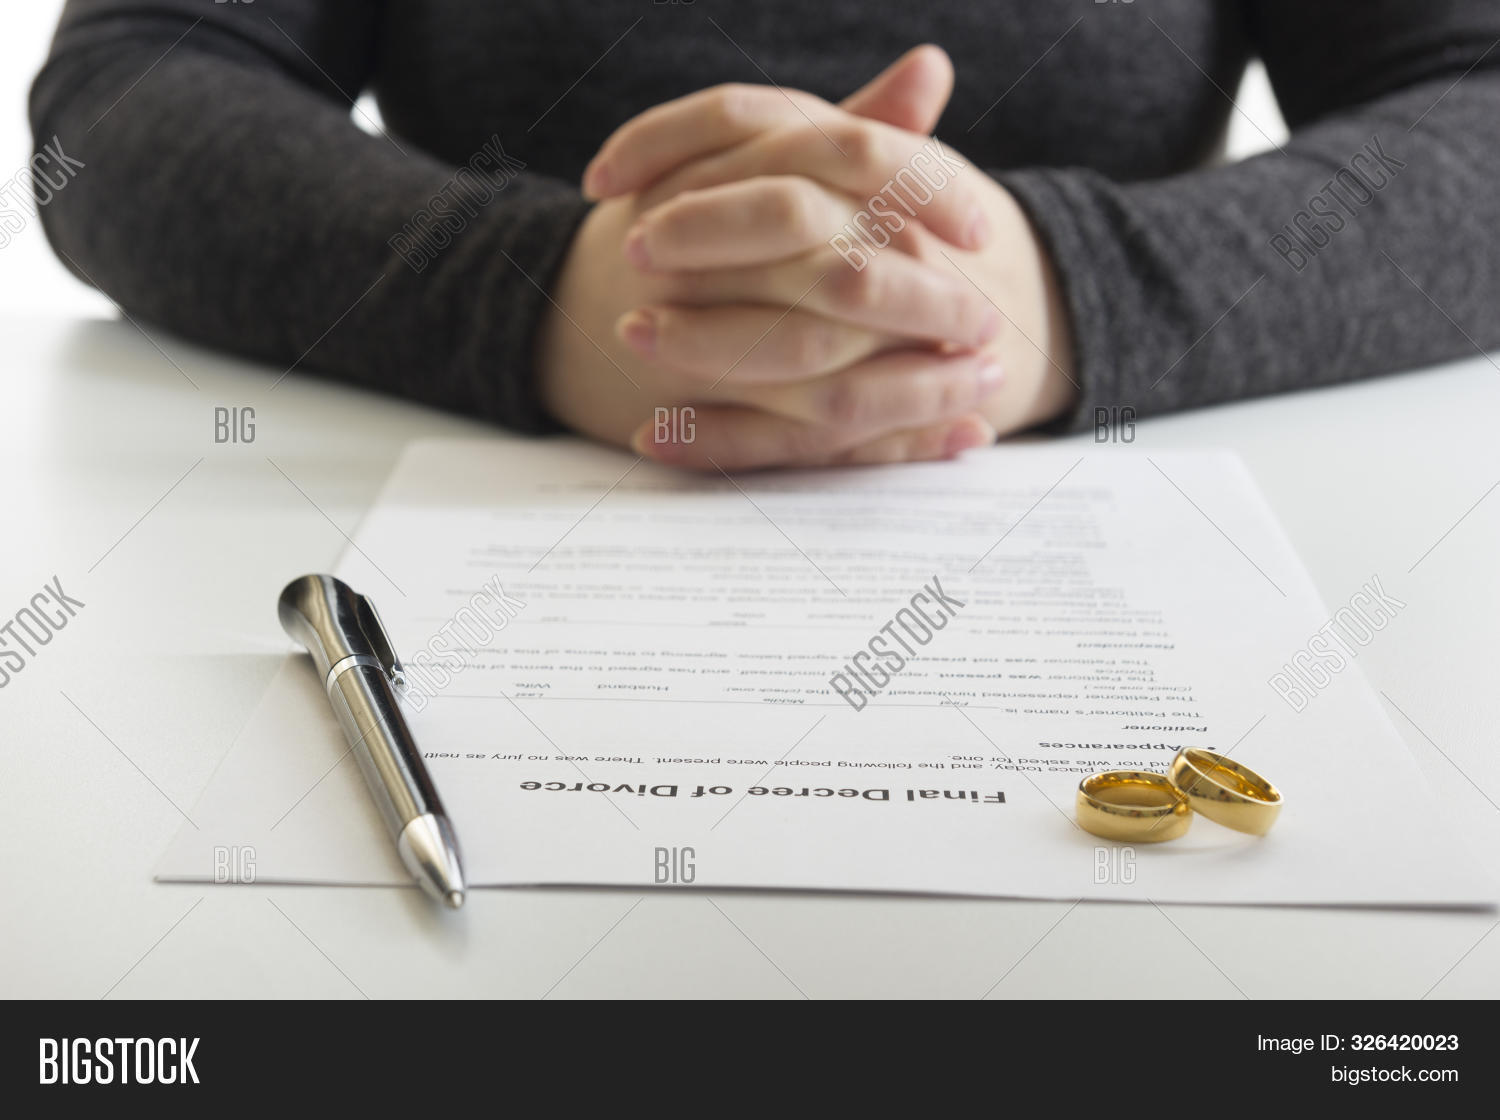 agreement,attorney,authority,break,breakup,cheating,civil,concept,conceptual,conflict,contract,couple,court,courthouse,decision,decree,disagreement,divorce,divorcement,document,end,family,female,gavel,hand,husband,infidelity,judge,judgement,law,lawyer,legal,love,man,marriage,over,paper,pen,relationship,ring,sad,separation,sign,single,split,spouse,termination,wedding,wife,woman